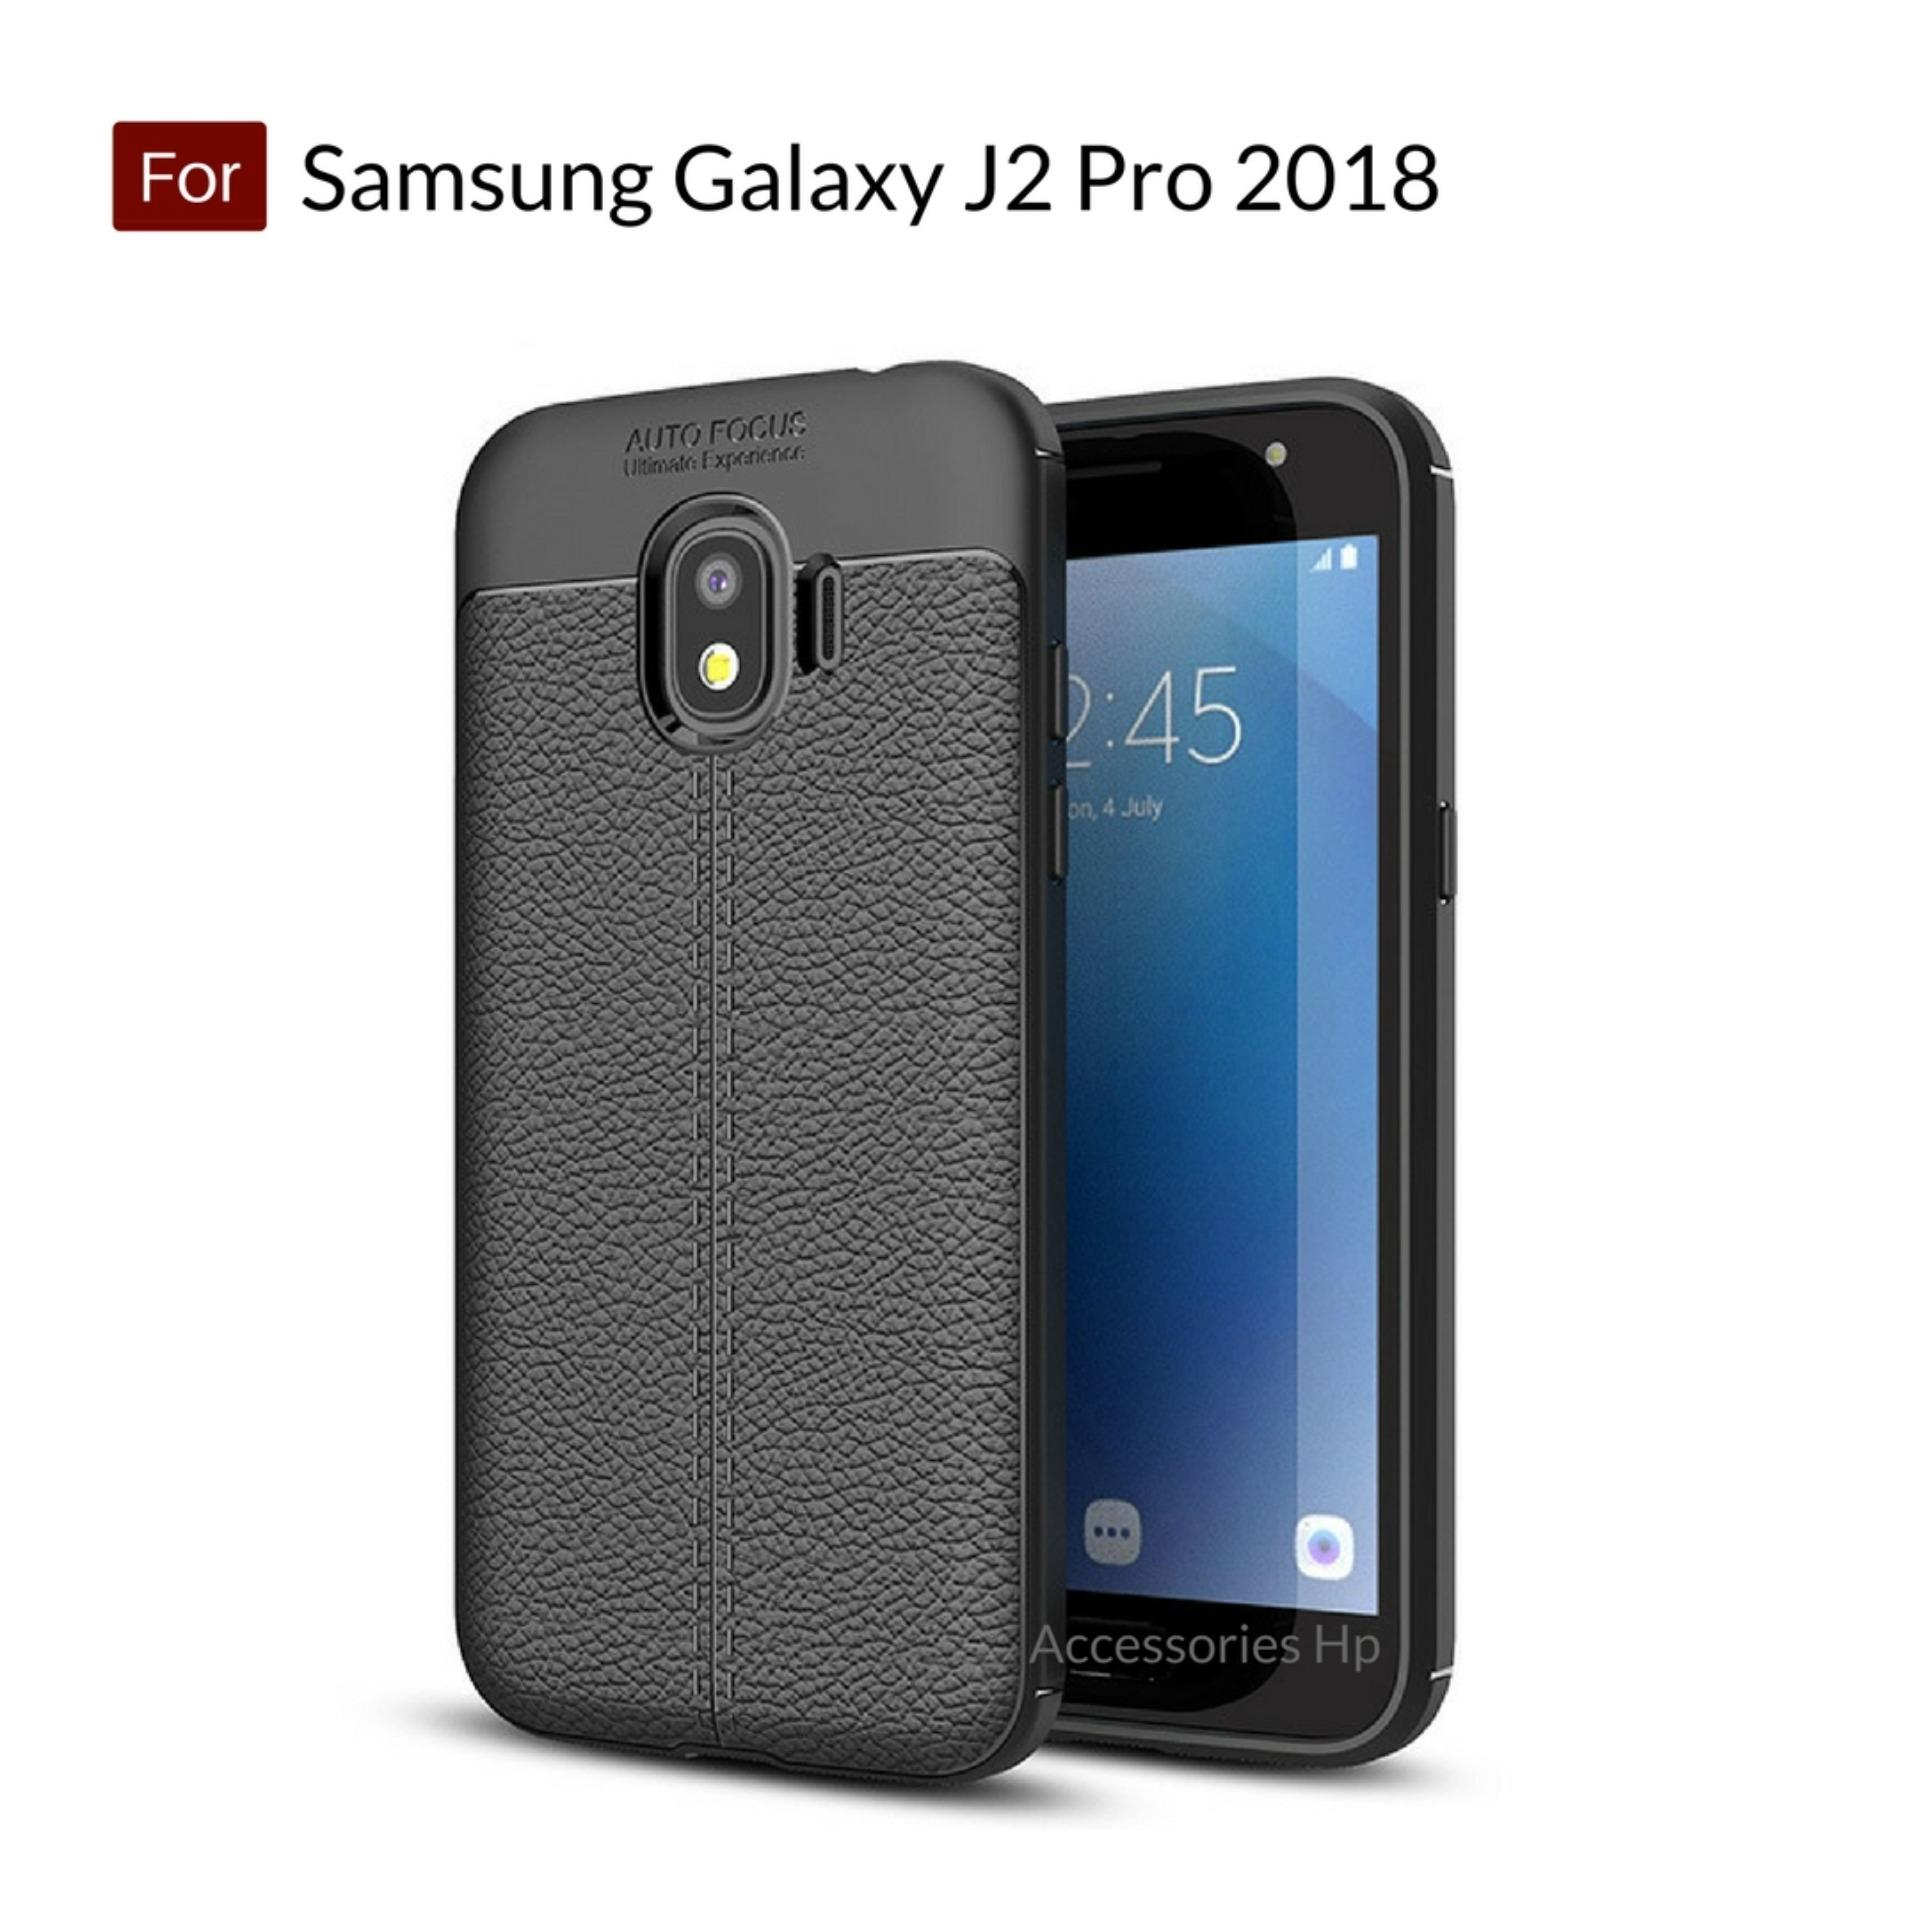 Accessories Hp Premium Ultimate Shockproof Leather Case For Samsung Galaxy J2 Pro 2018